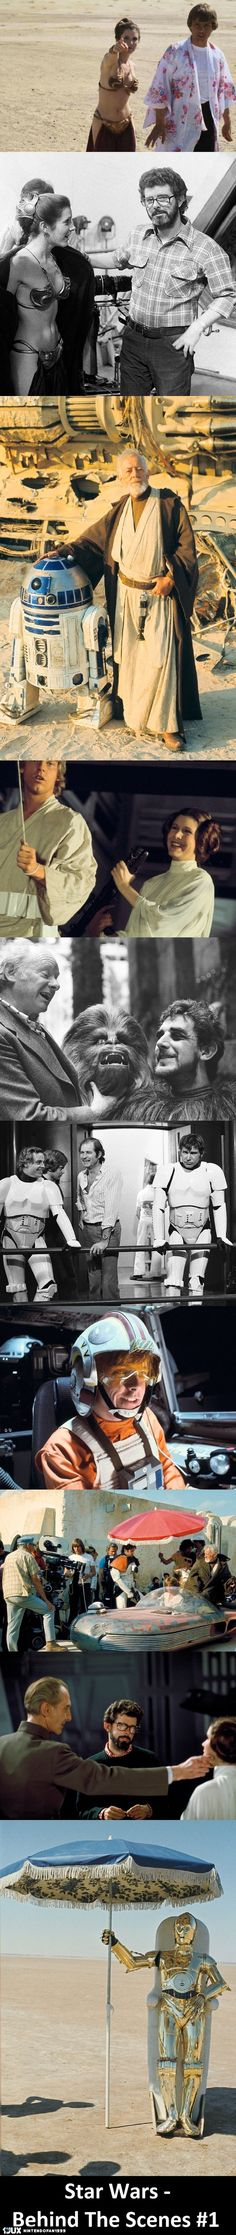 Star Wars Behind The Scenes #1